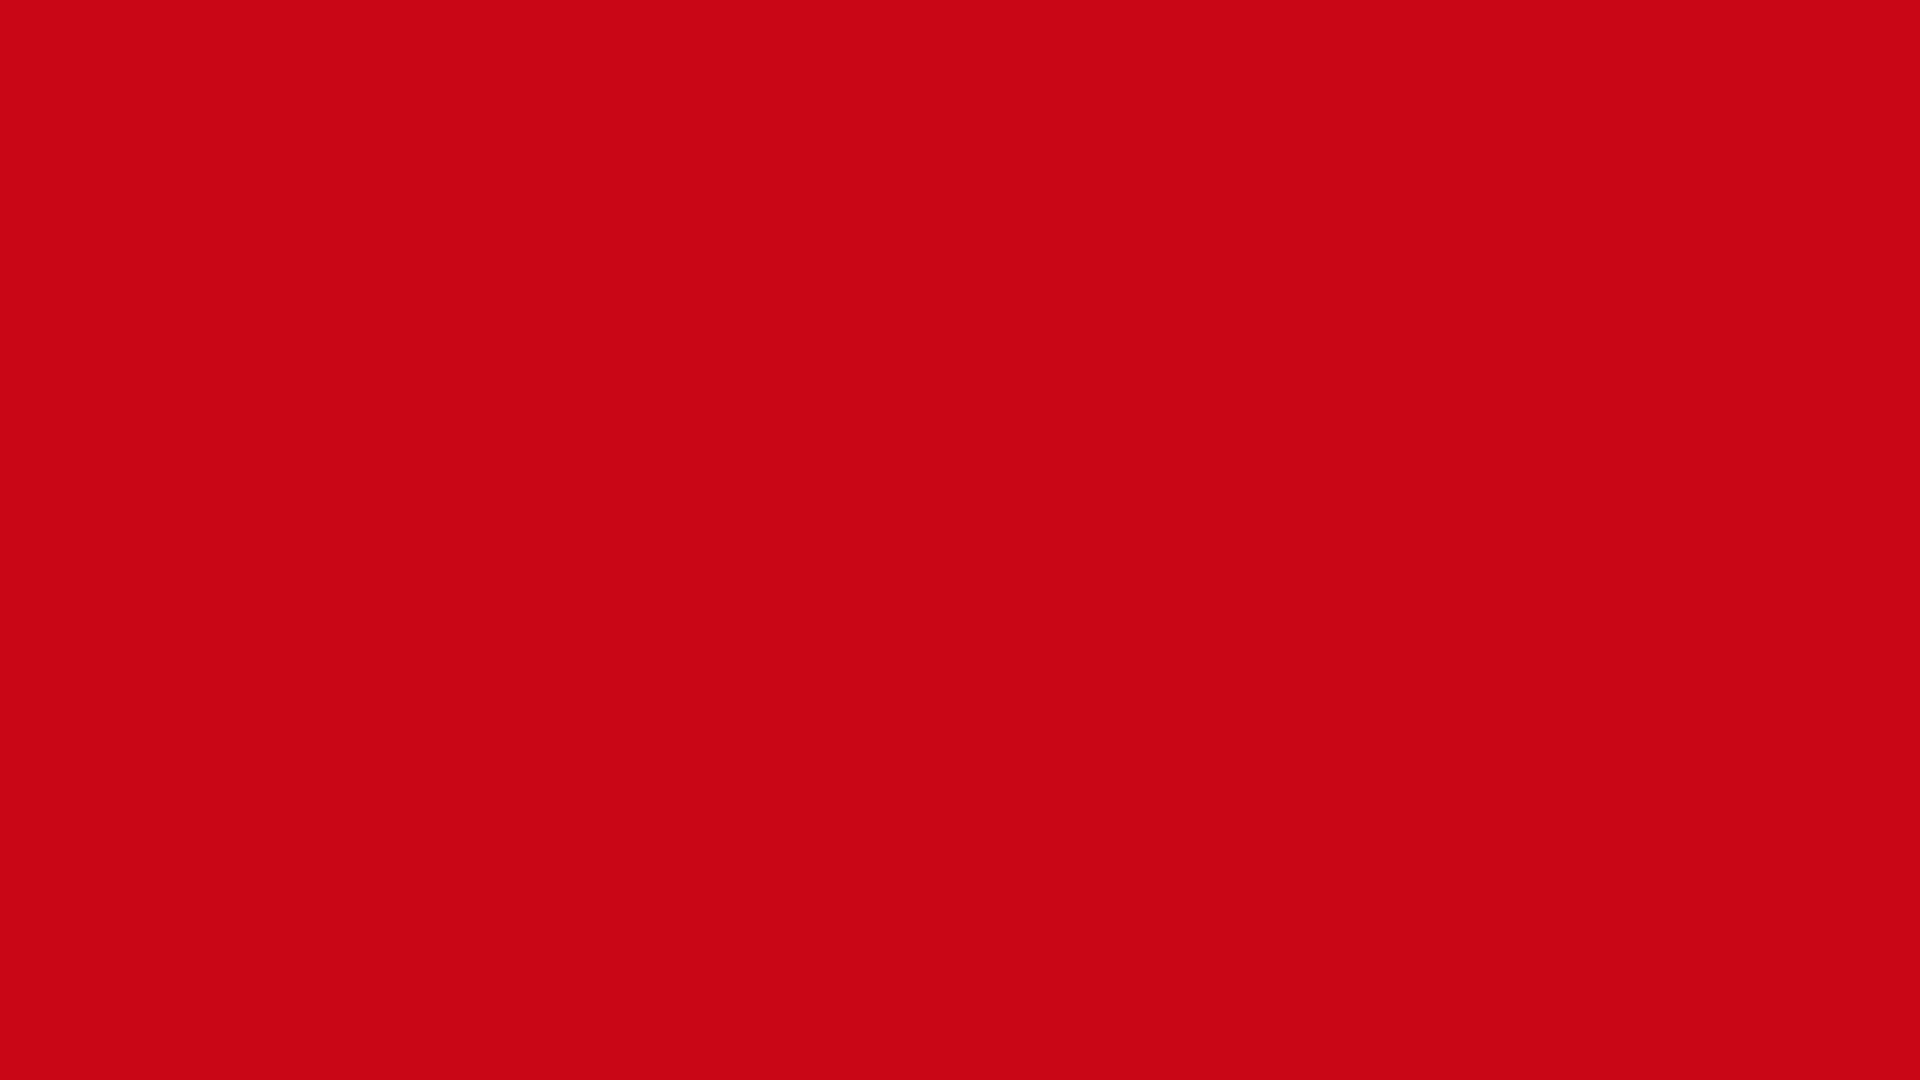 1920x1080 Venetian Red Solid Color Background